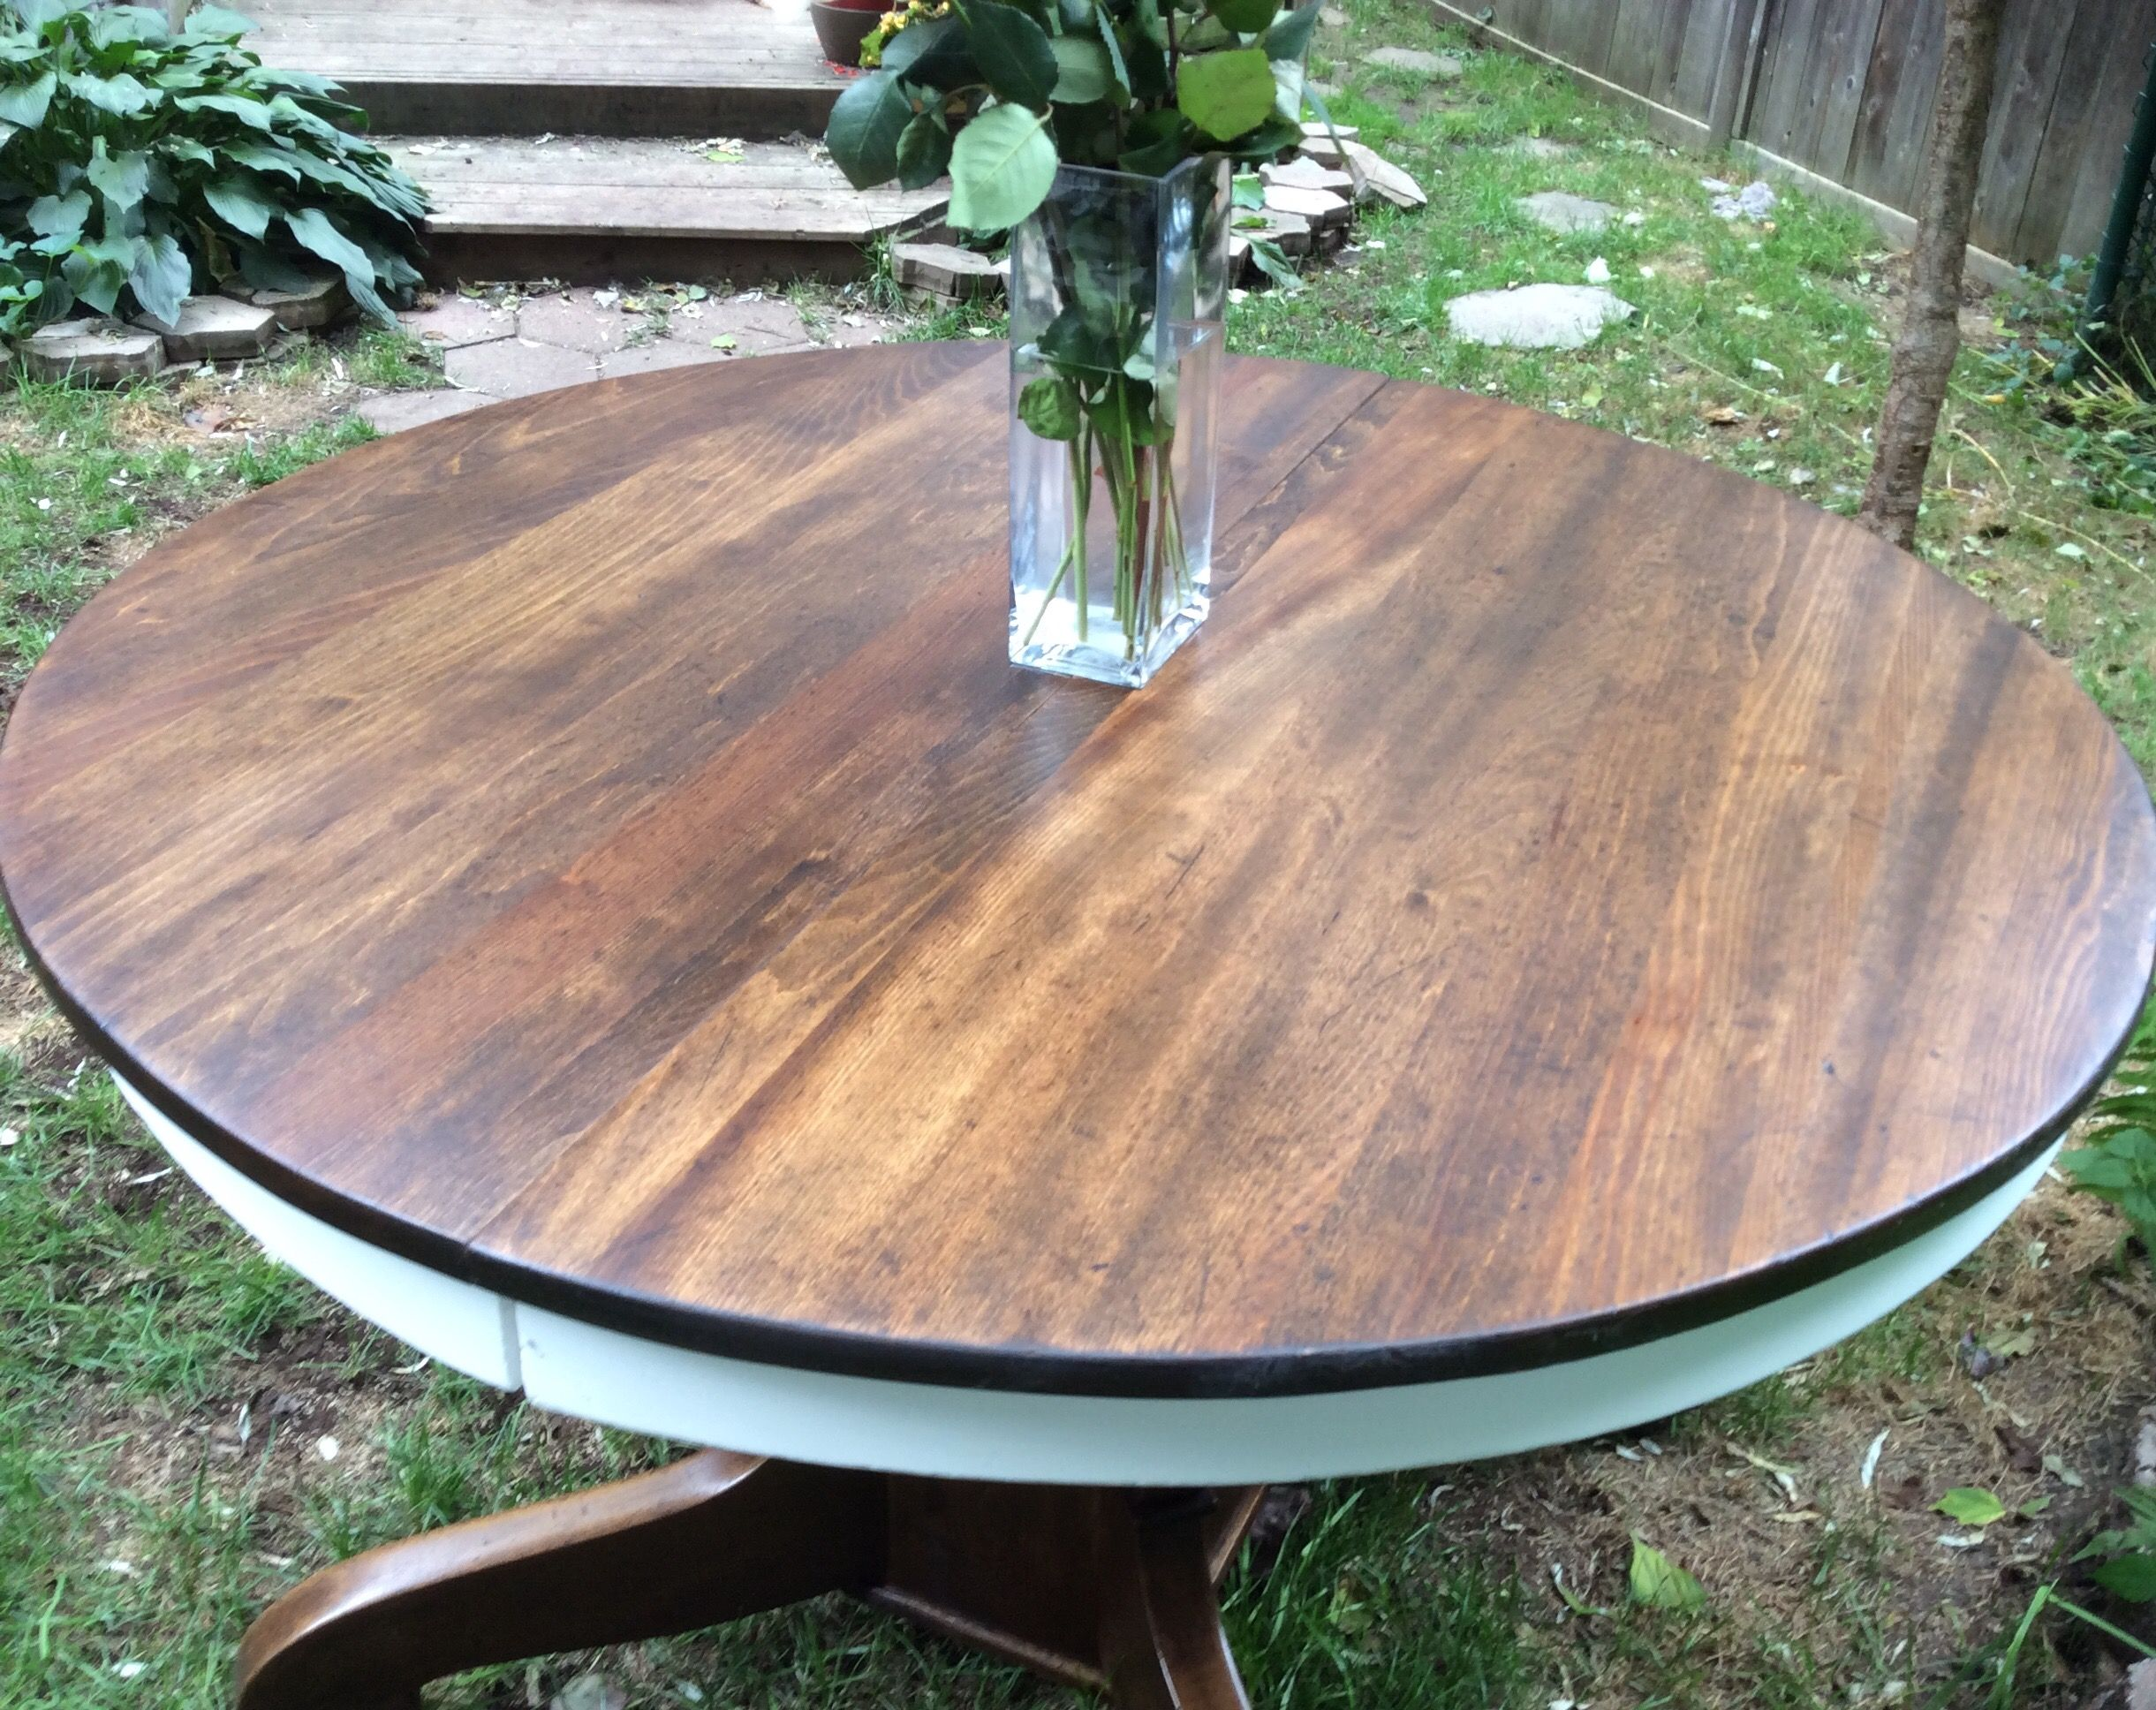 antique oak pedestal table refinished in annie sloan pure white chalk paint and refinished in dark antique oak pedestal table refinished in annie sloan pure white      rh   pinterest com